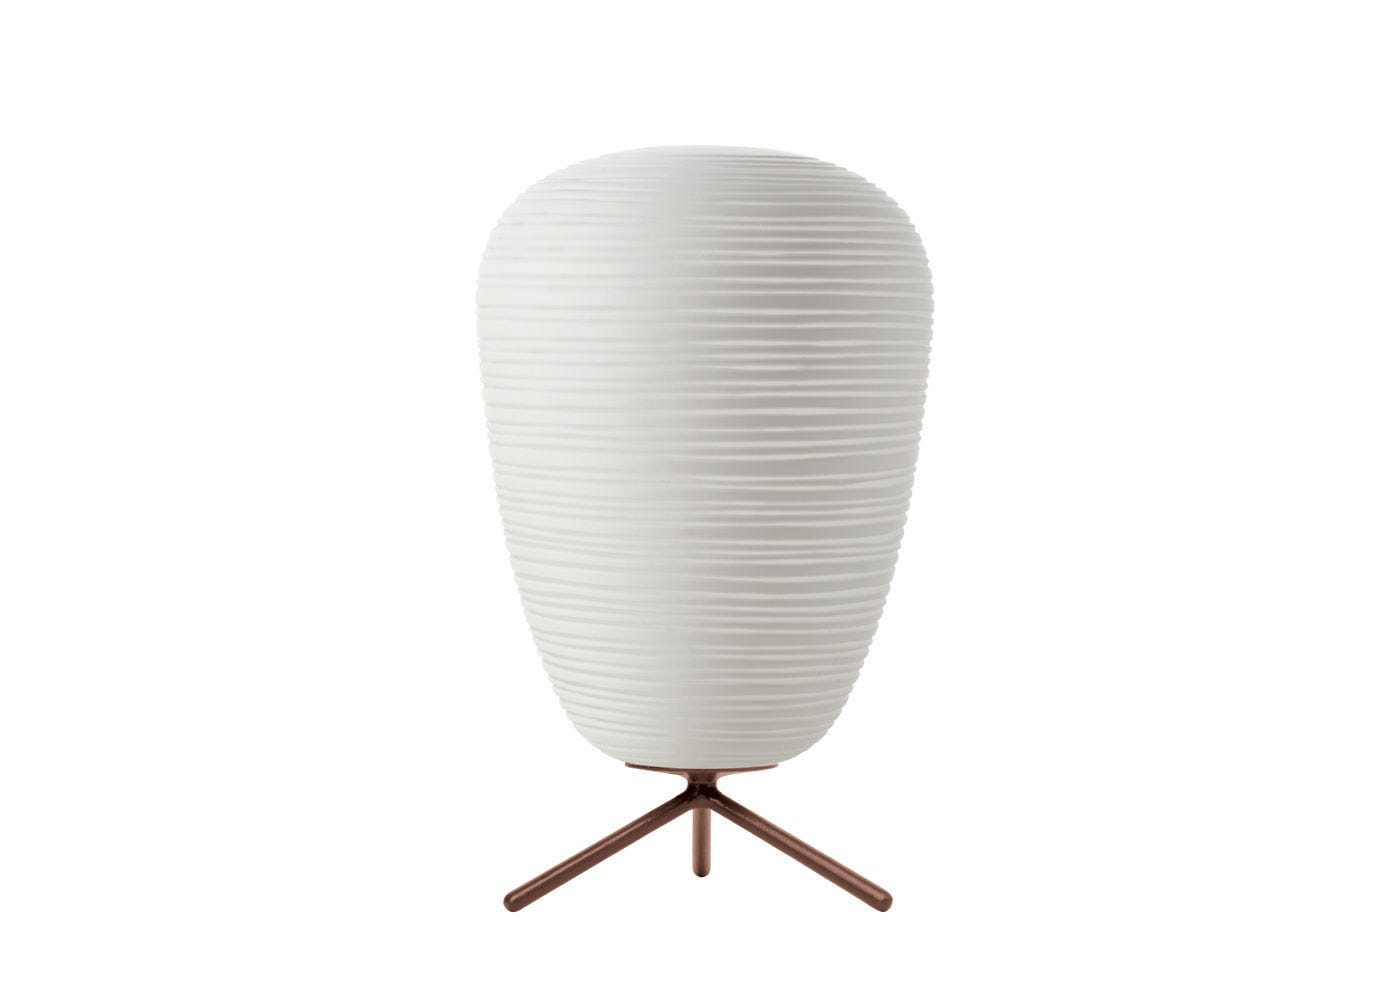 As shown: Rituals Table Lamp 1.